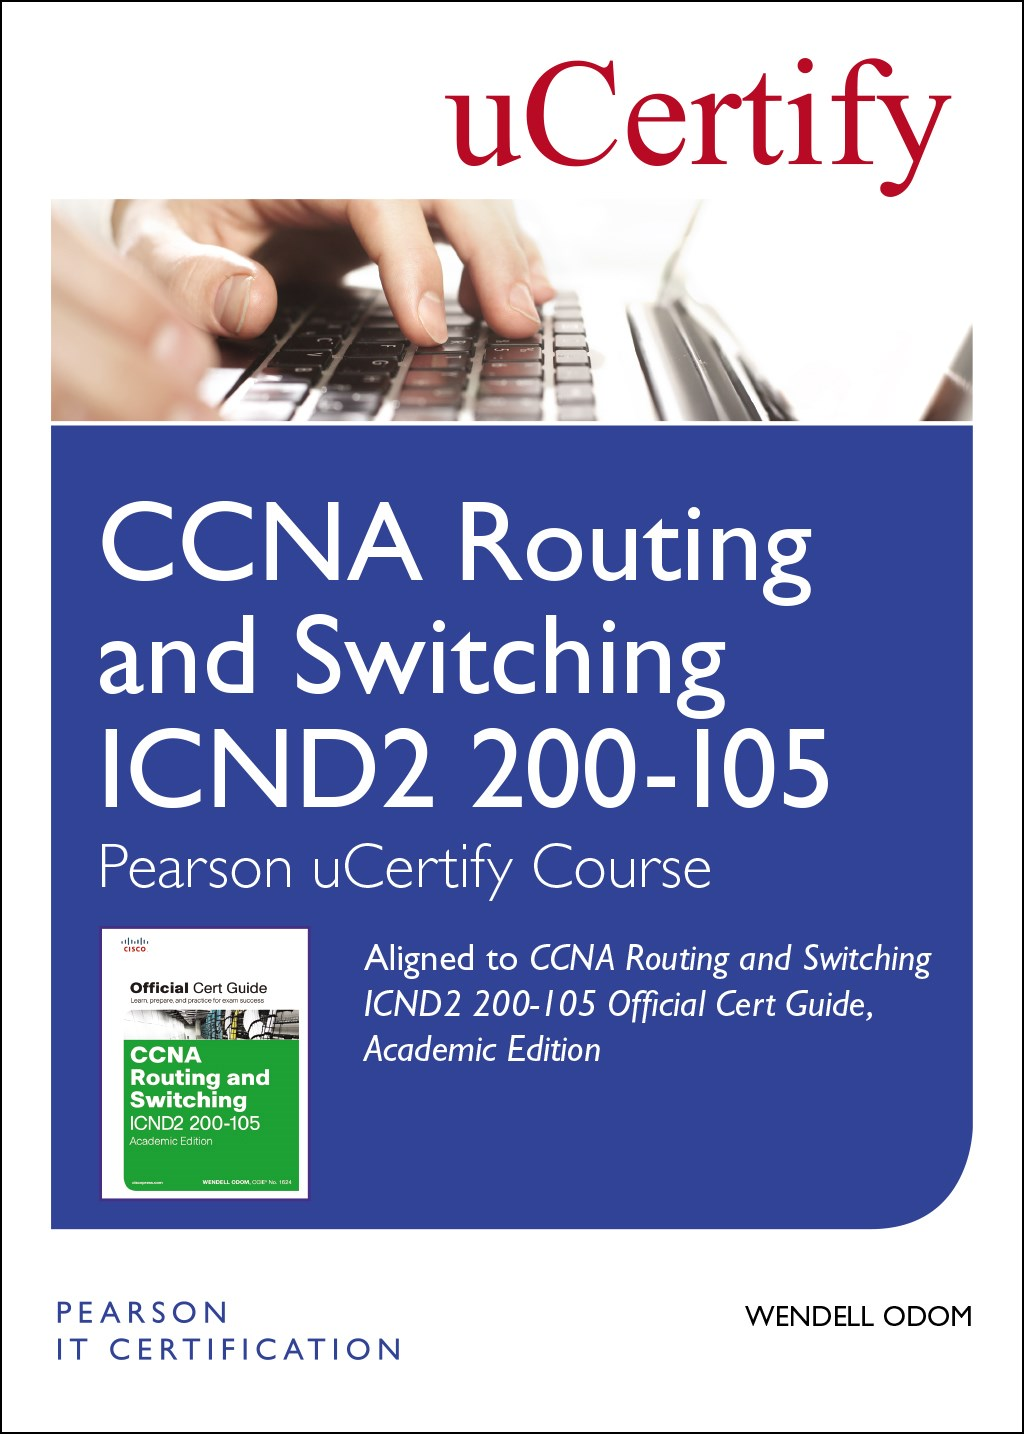 CCNA Routing and Switching ICND2 200-105 Official Cert Guide, Academic Edition Pearson uCertify Course Student Access Card